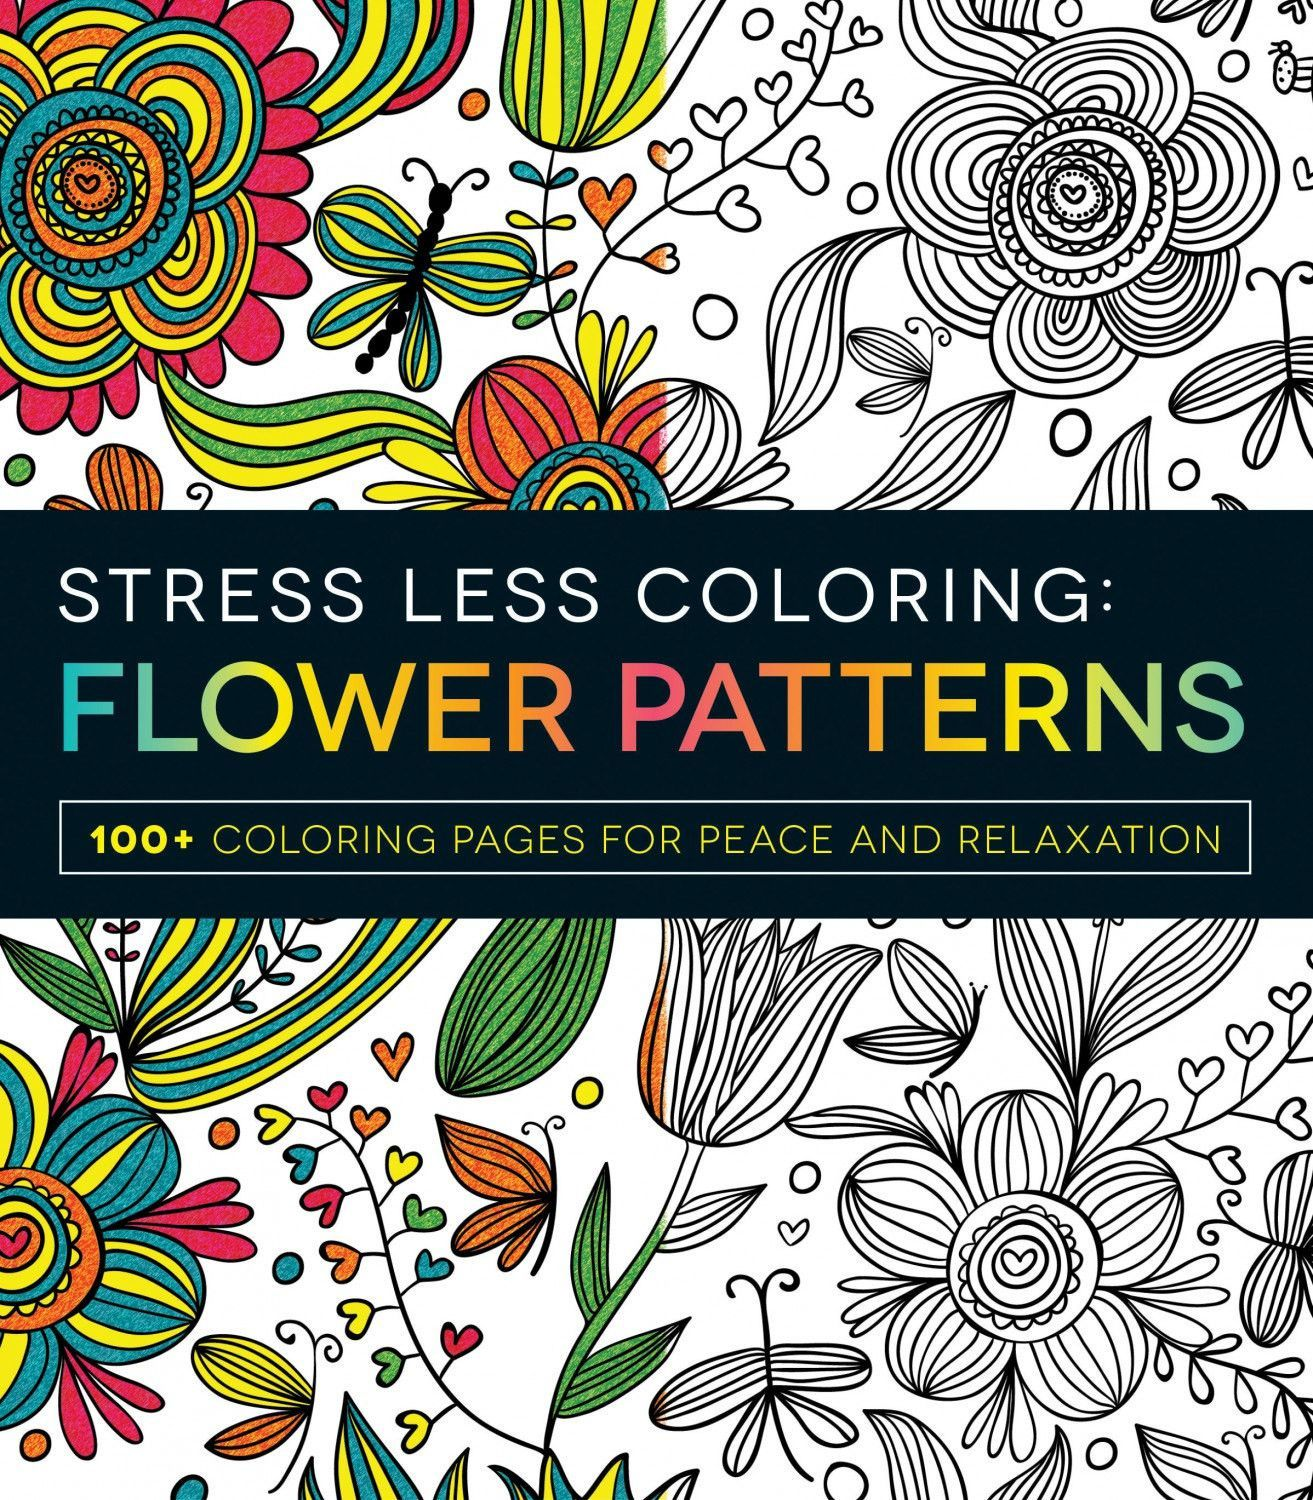 Posh coloring book soothing designs for fun and relaxation - Posh Coloring Book Soothing Designs For Fun And Relaxation 33